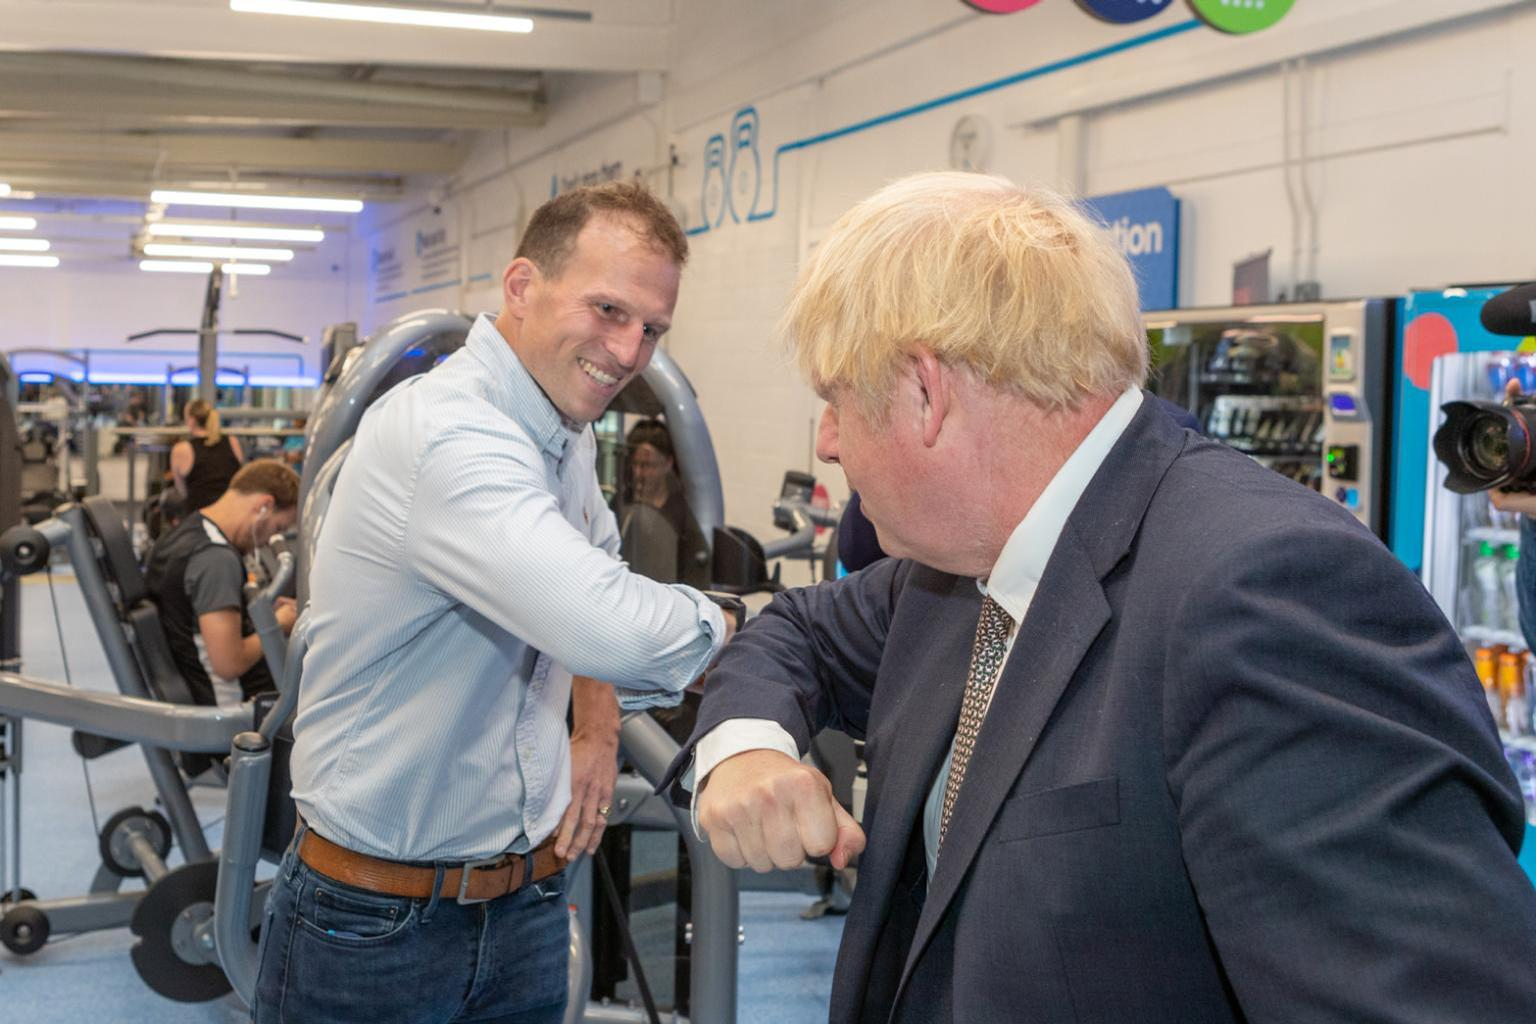 The PM's visit was hosted by Gym Group COO Barney Harrison (left) / Barney Harrison/LinkedIn/The Gym Group